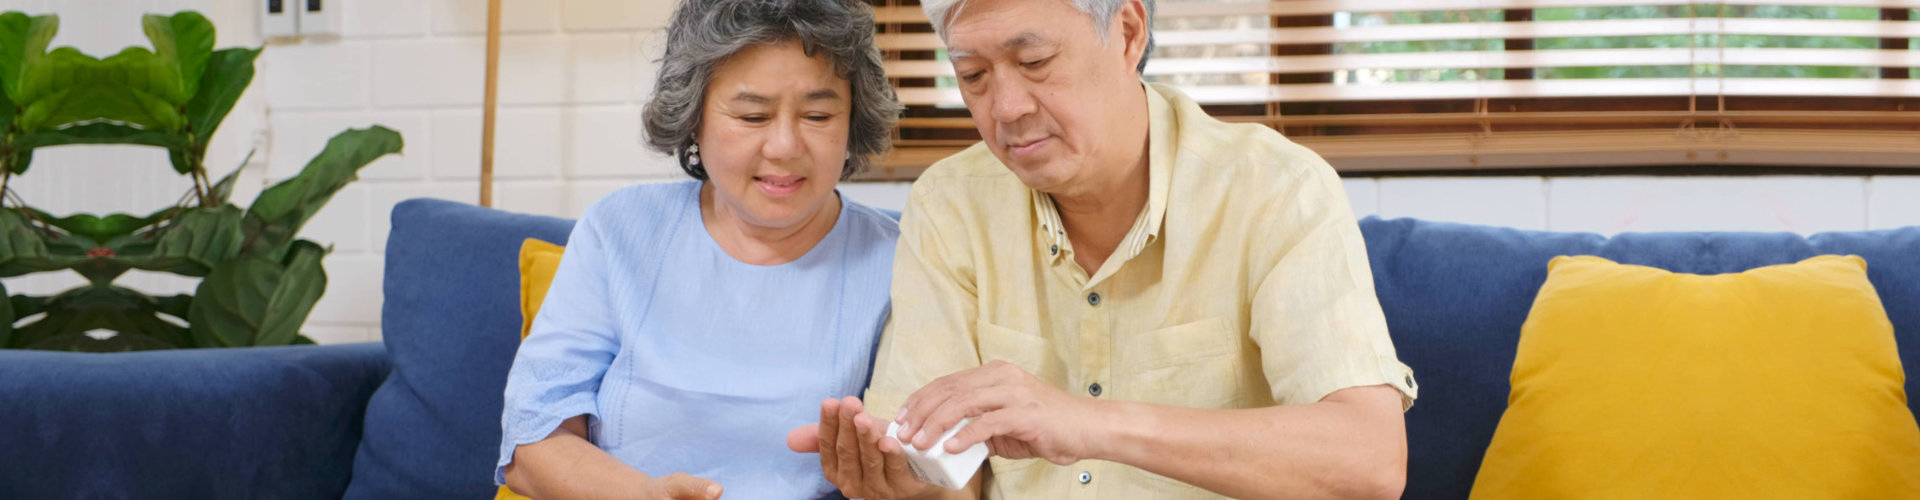 husband giving medication to his wife